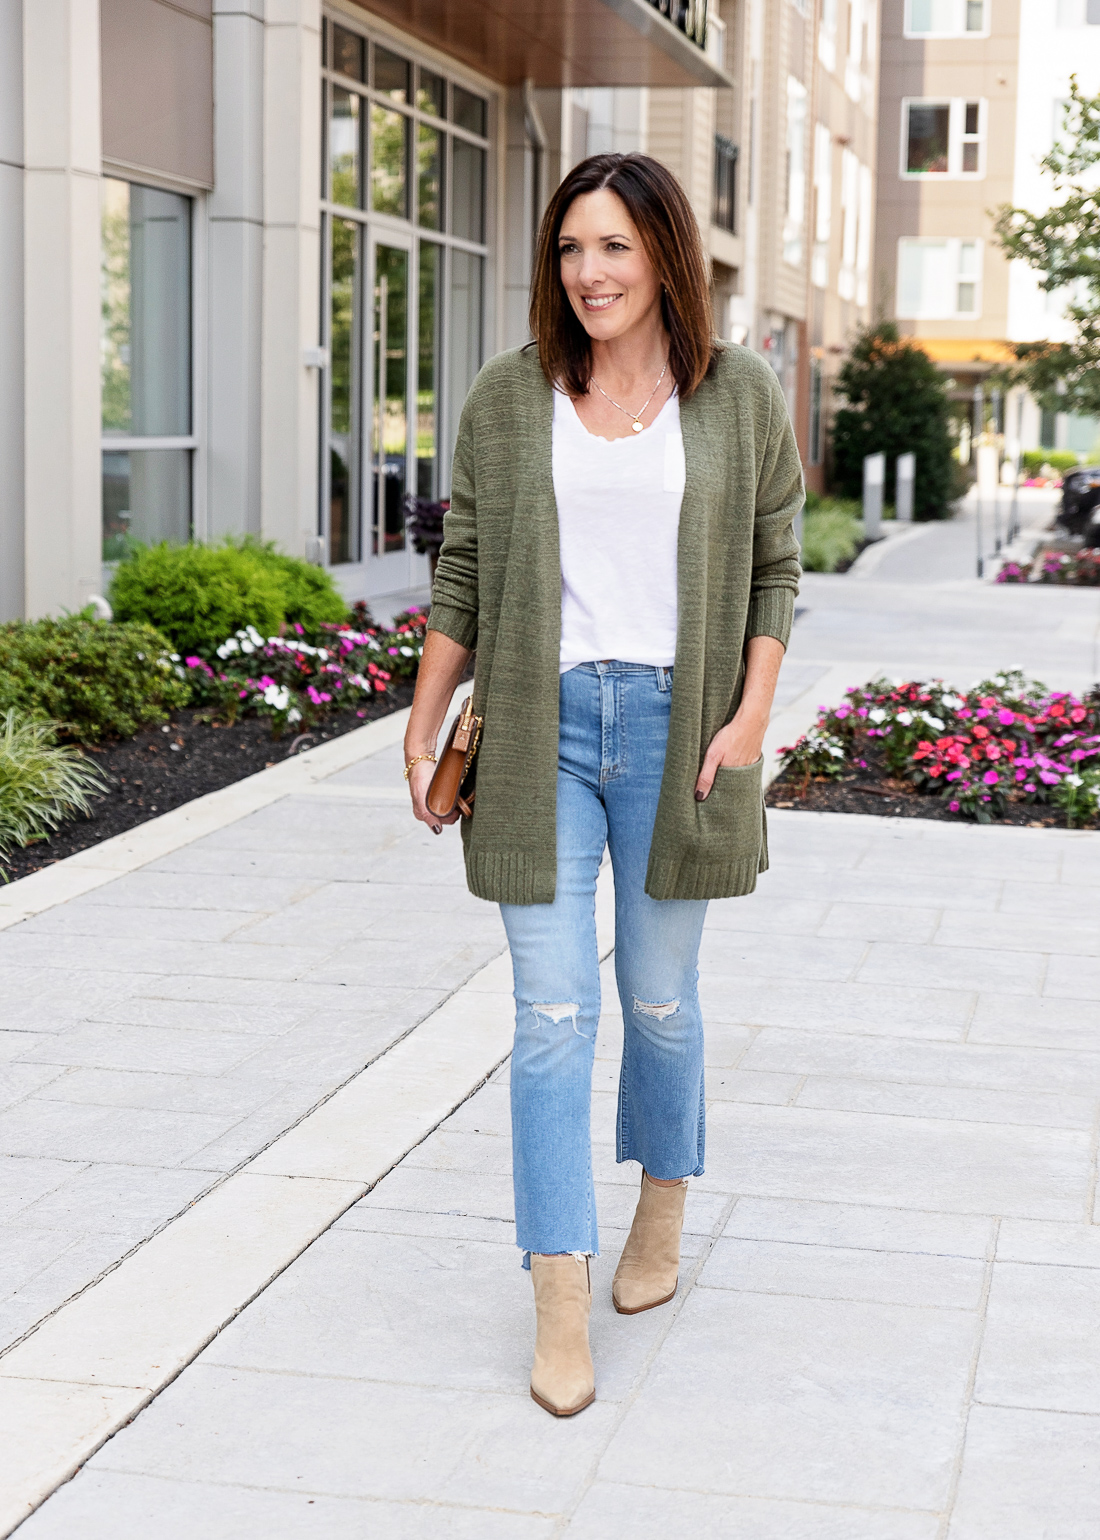 What to Wear with Light Wash Jeans: Bold Colors